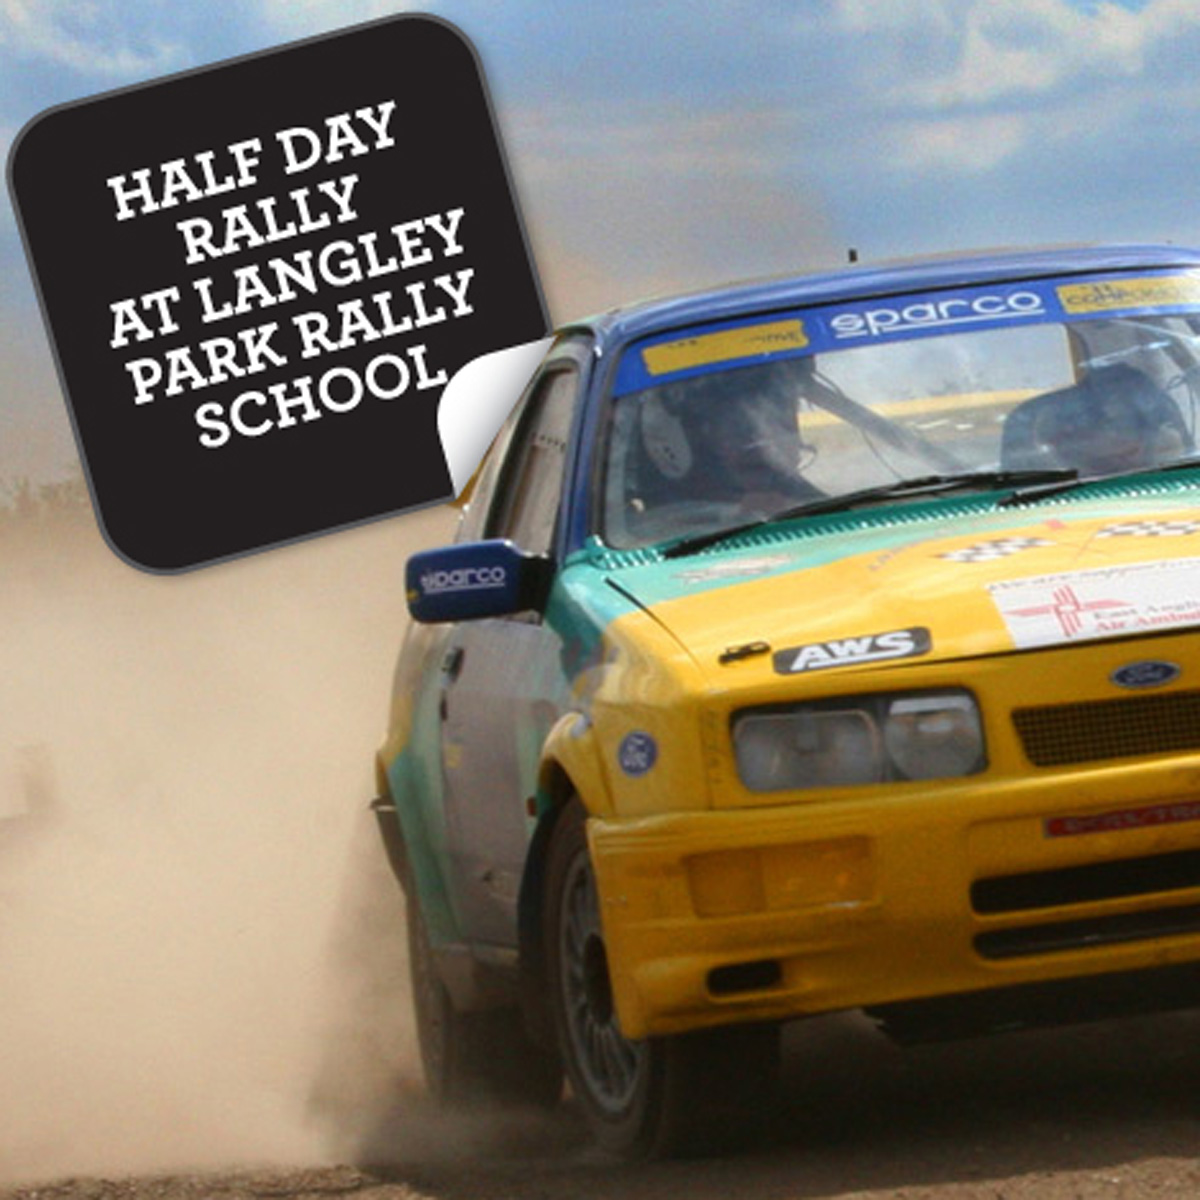 Half Day Rally at Langley Park Rally School